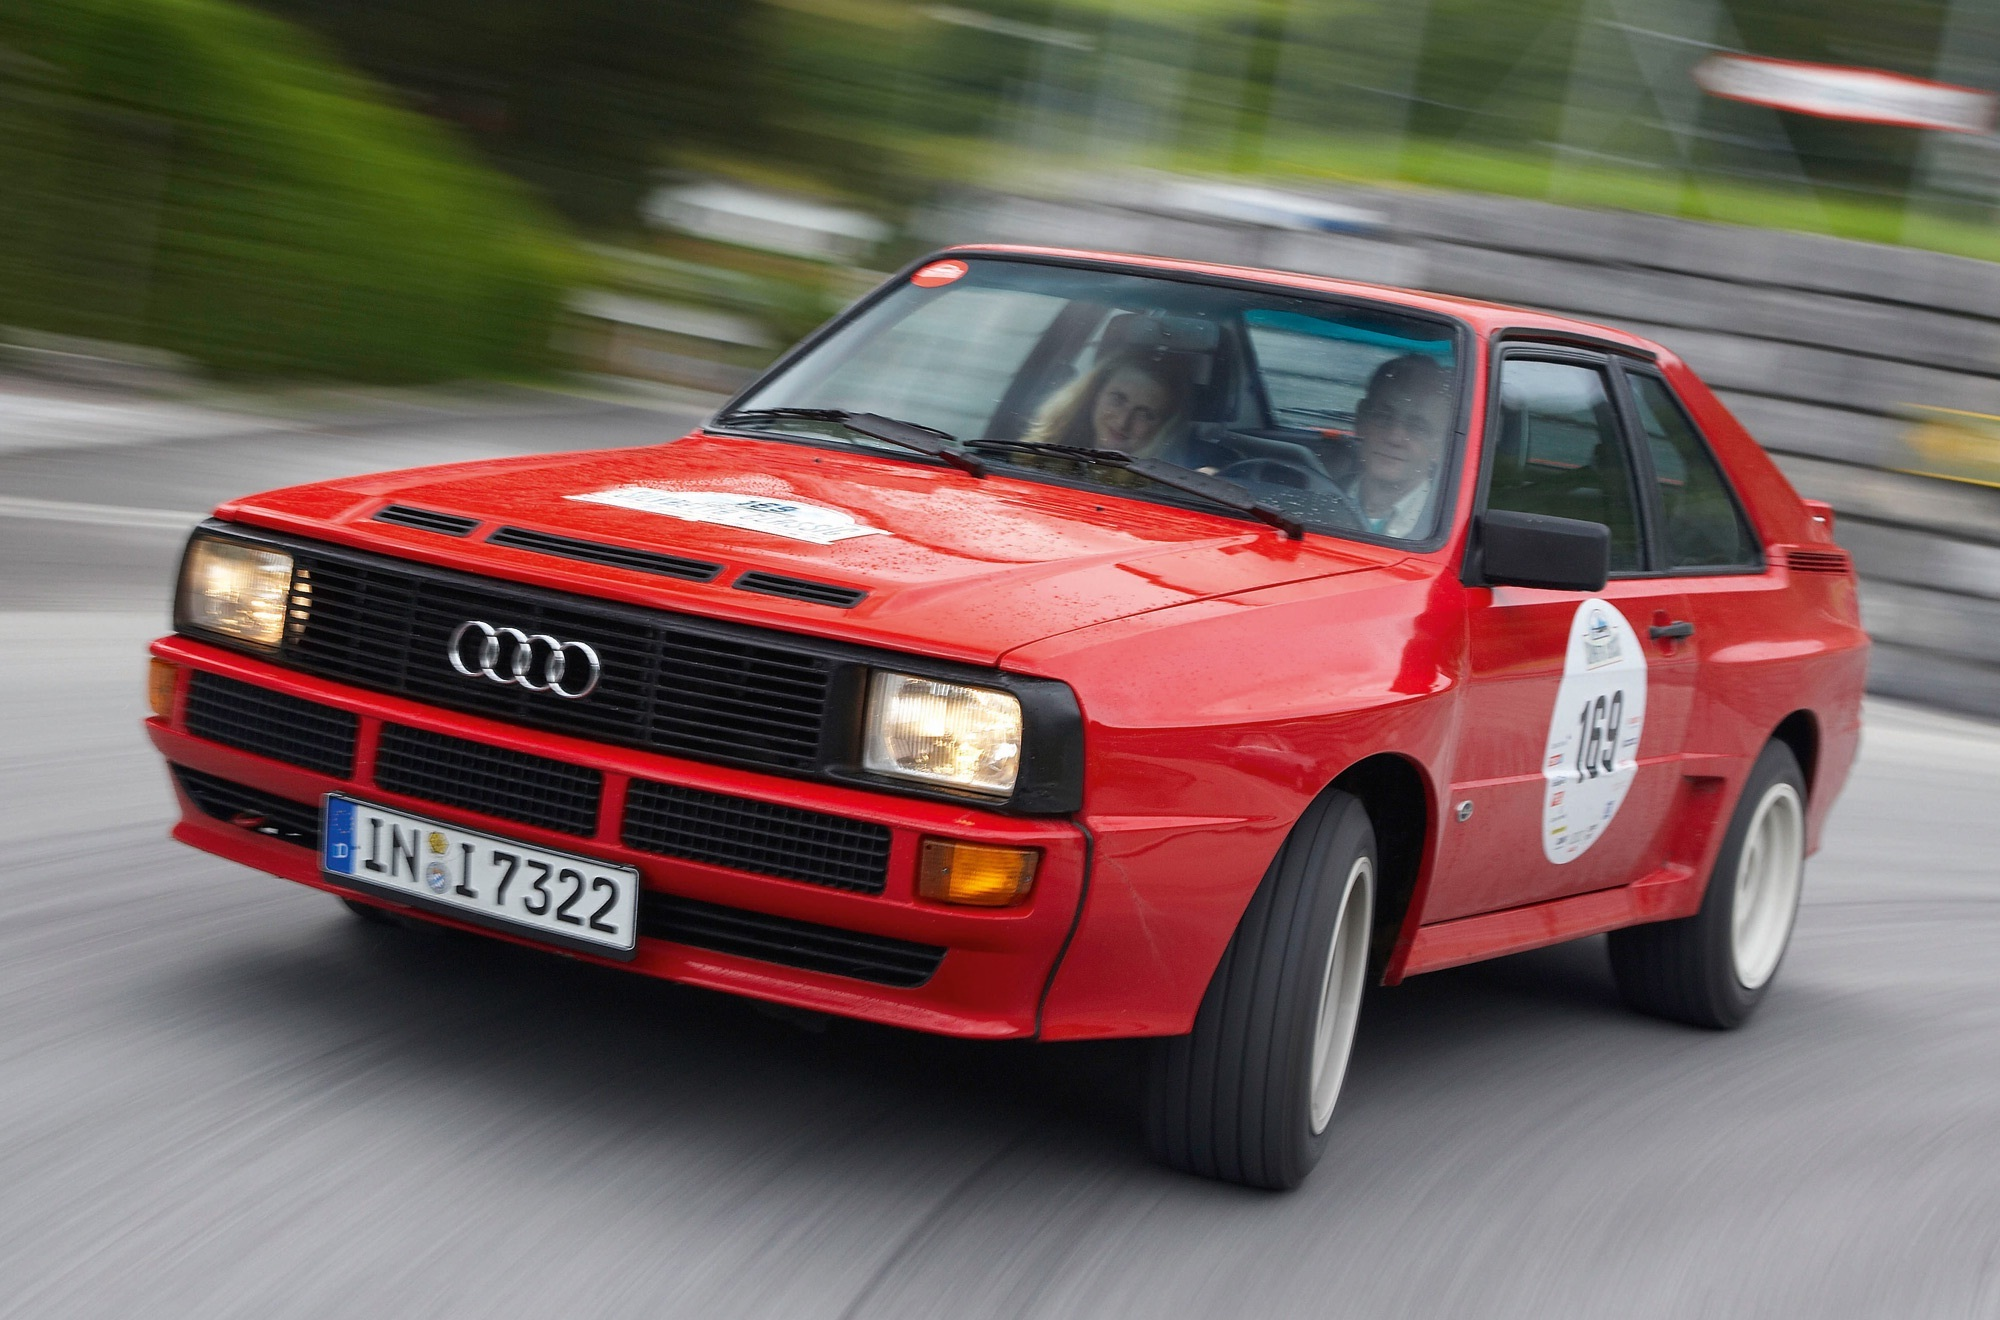 cars Audi vehicles Quattro HD Wallpaper